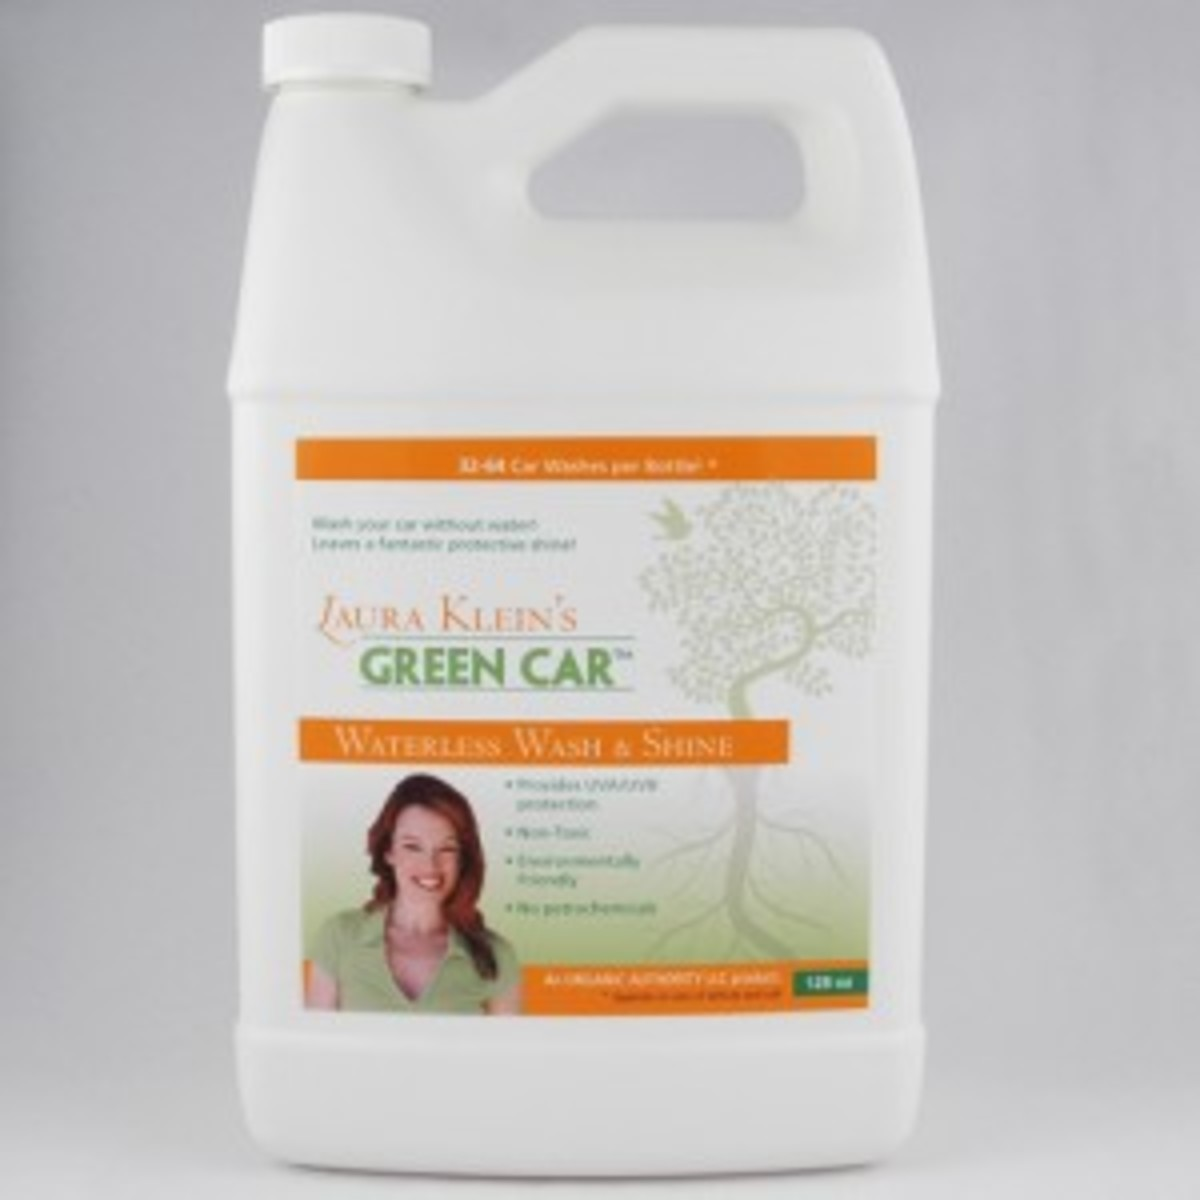 Laura Klein's Green Car Waterless Car Wash